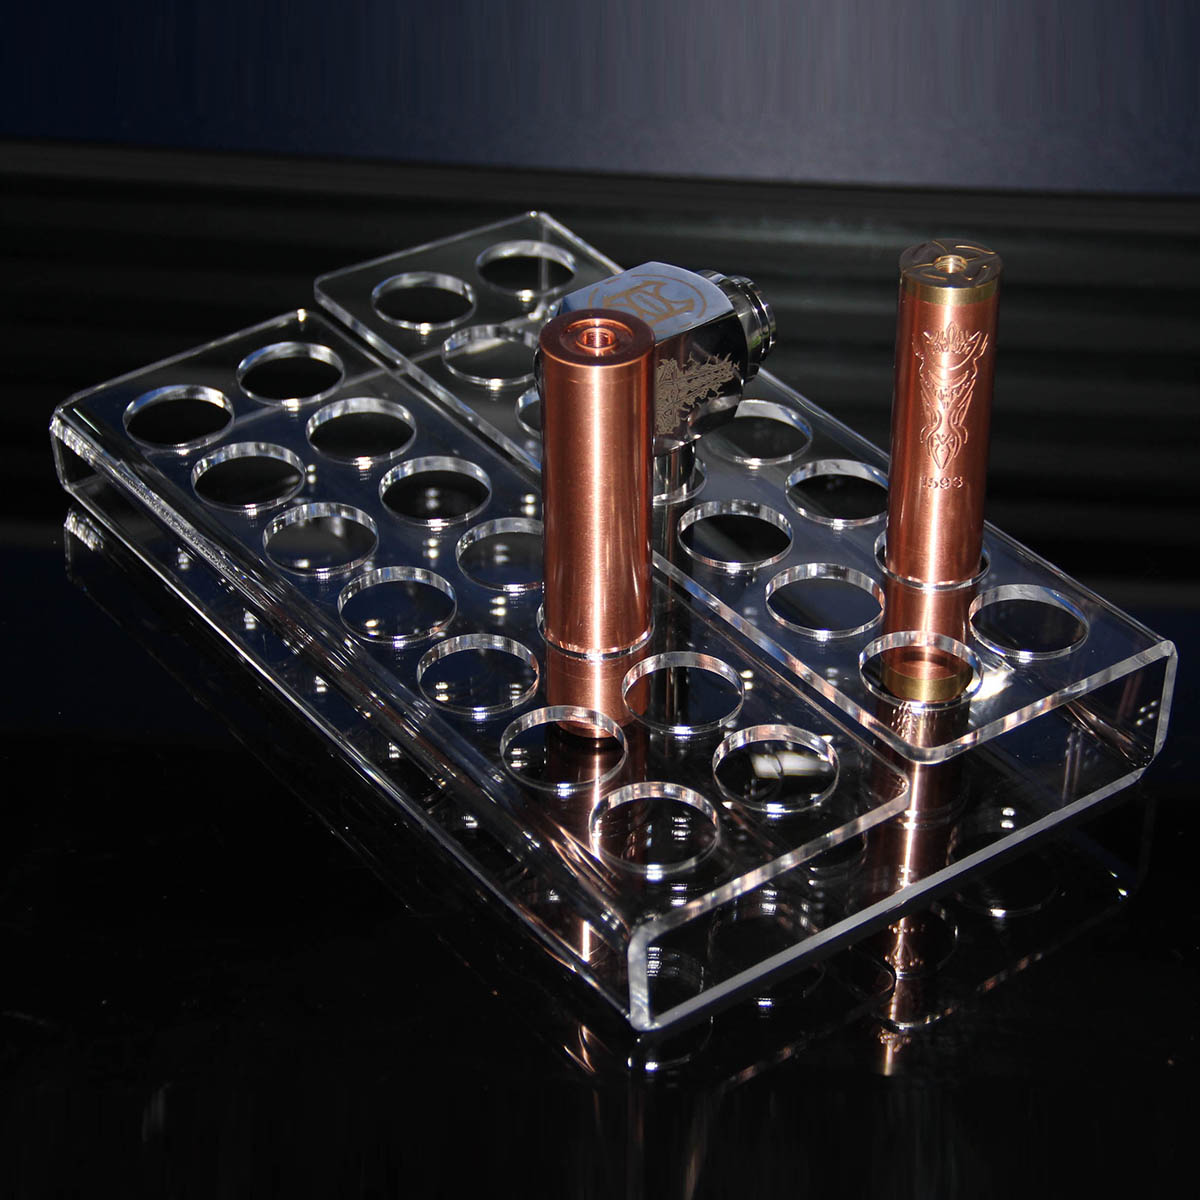 B014 Acrylic Vape Display Tray with 28 Holes For Mod